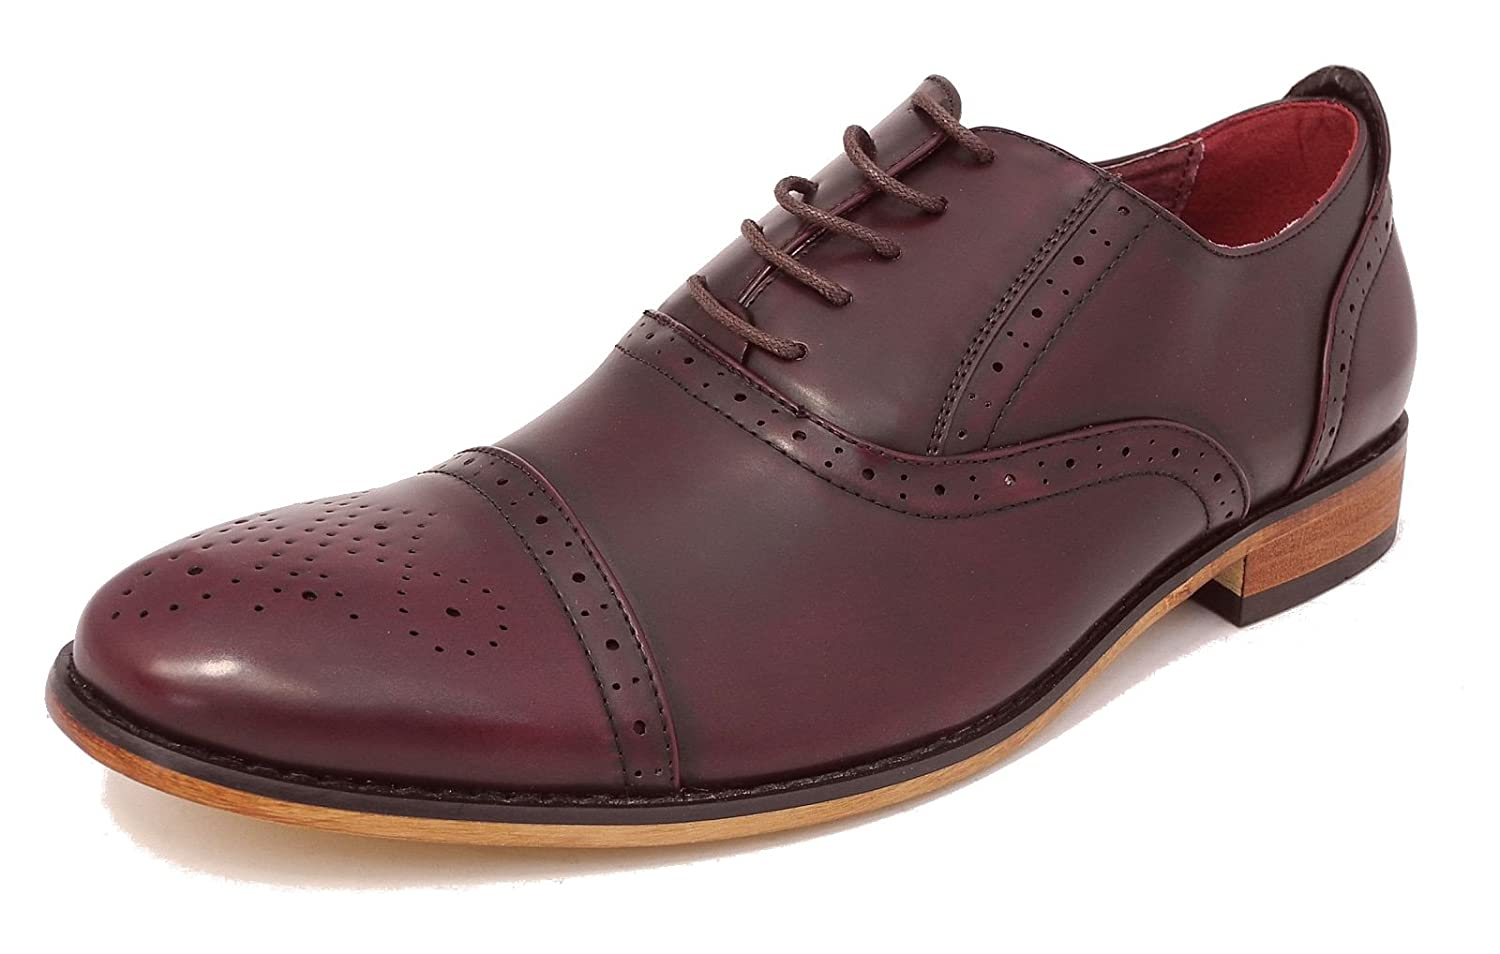 Boys Leather Lined Smart Lace Up Oxford Brogues Shoes Oxblood Burgundy Size 11-5.5 Goor - Click Image to Close